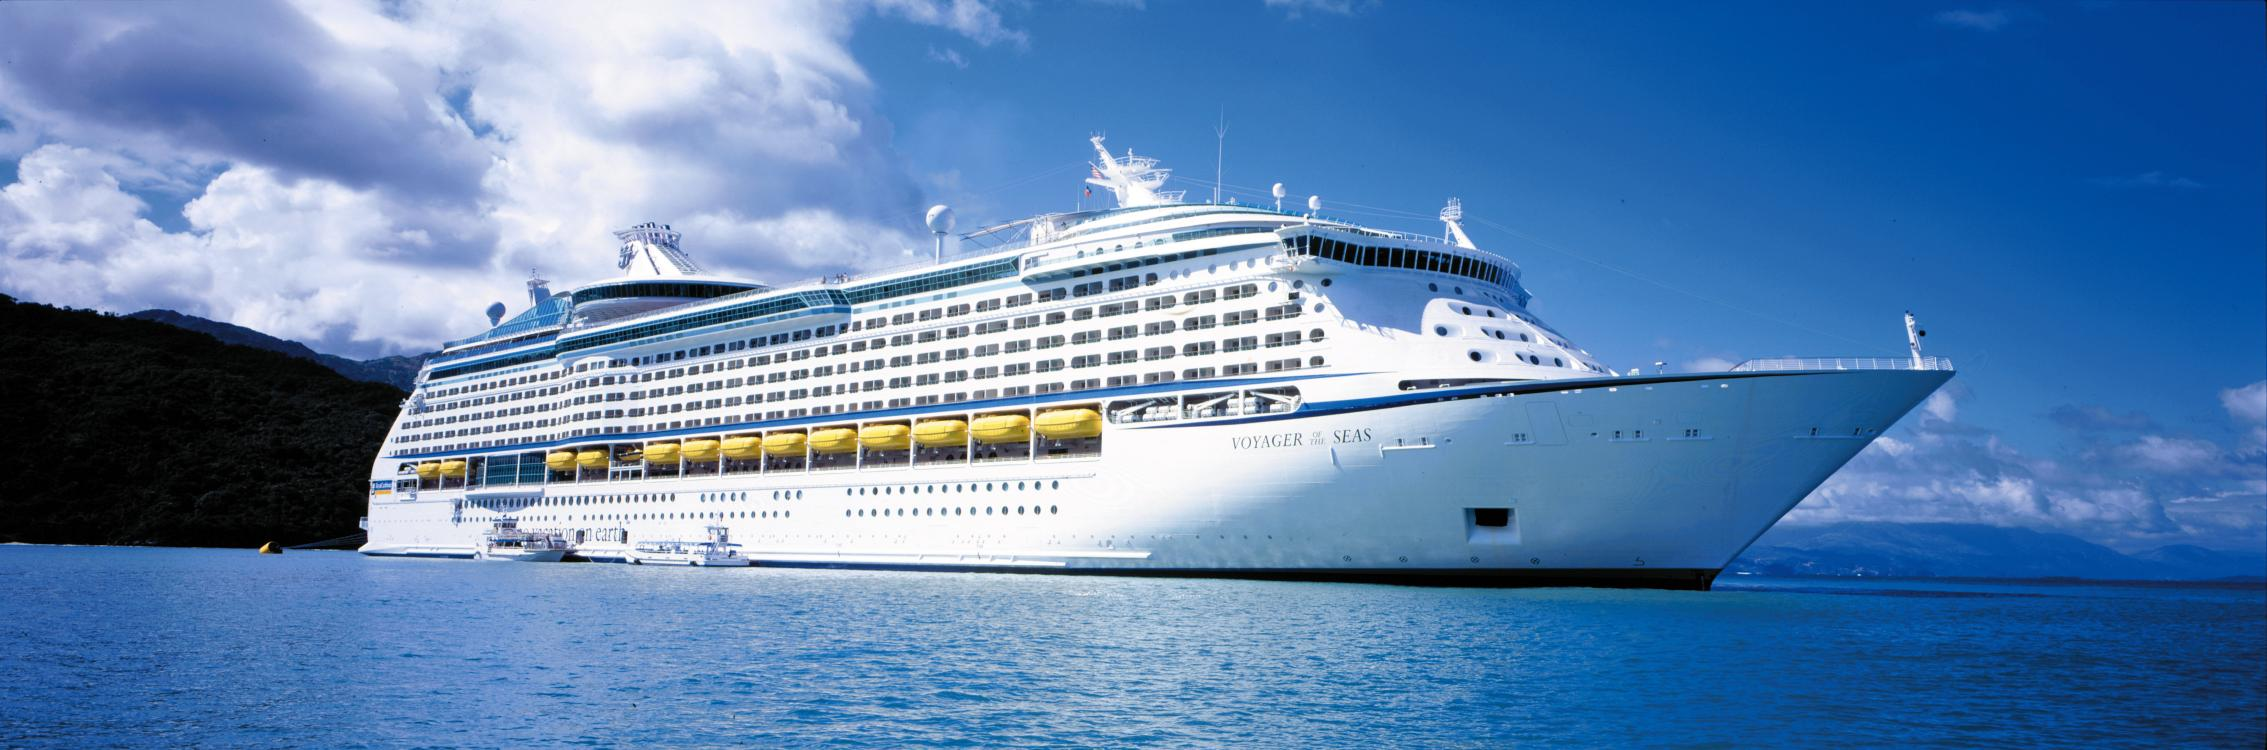 Royal Caribbean Oasis Of The Seas Other 157309 HD Wallpaper Res 2267x750